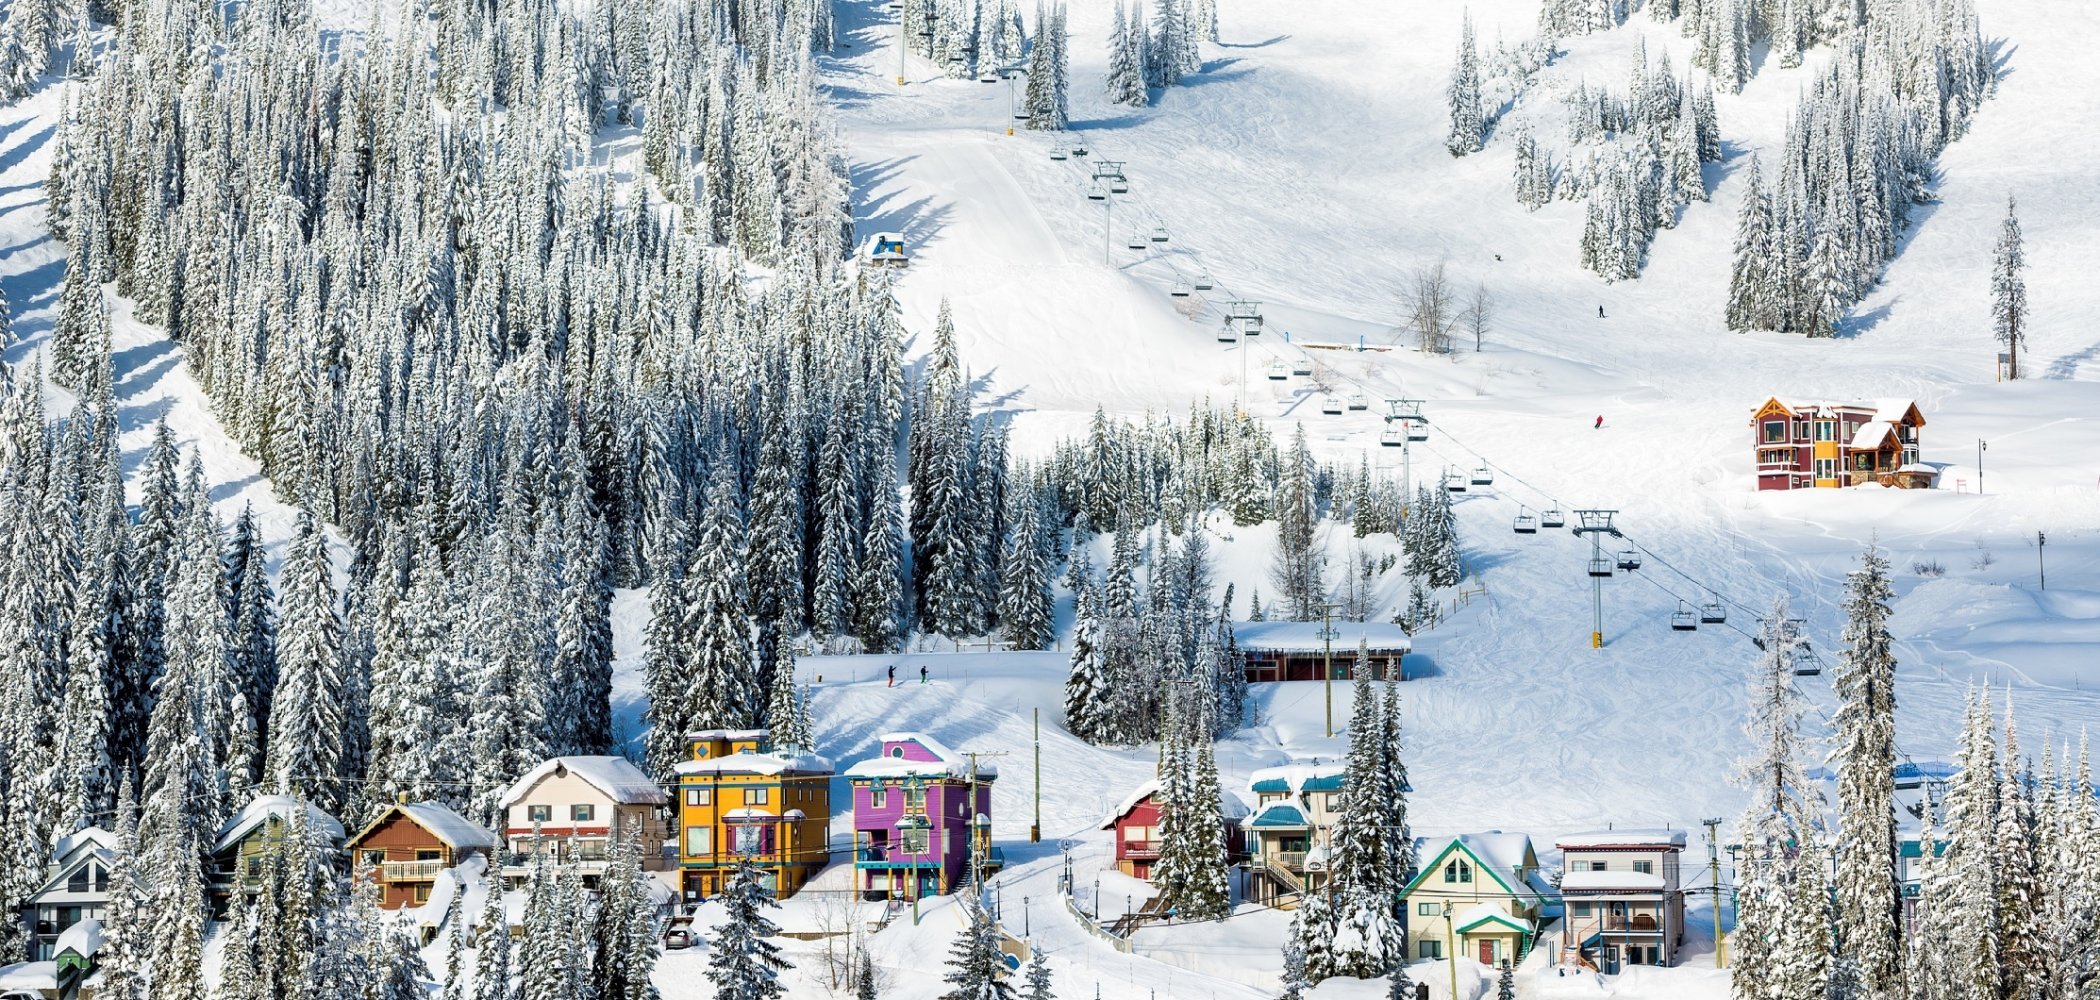 SIlver Star Mountain Resort | Blake Jorgenson